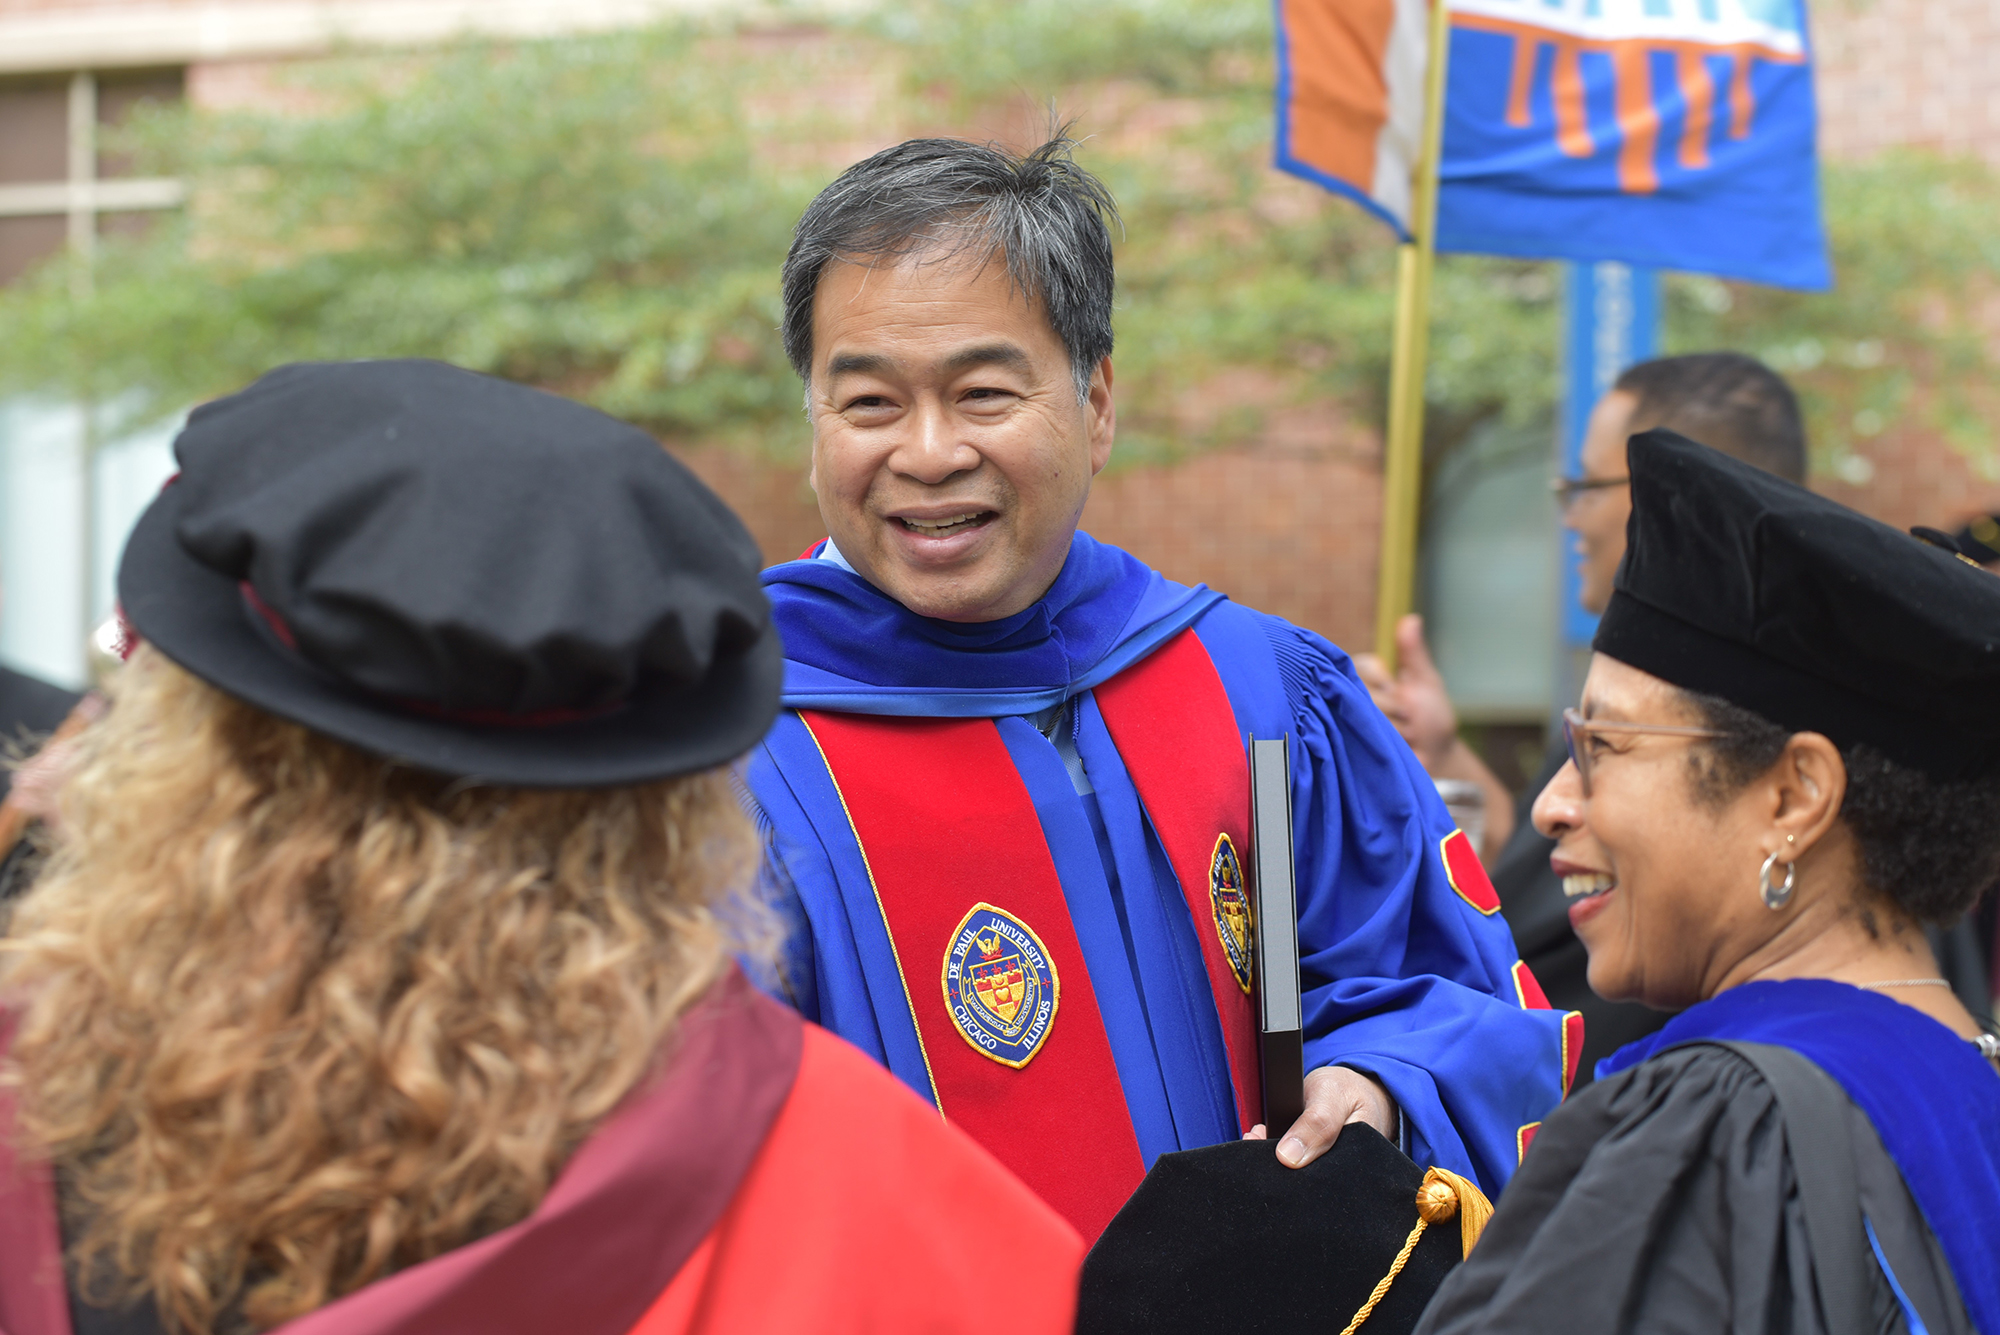 President A. Gabriel Esteban, PhD, at DePaul Academic Convocation